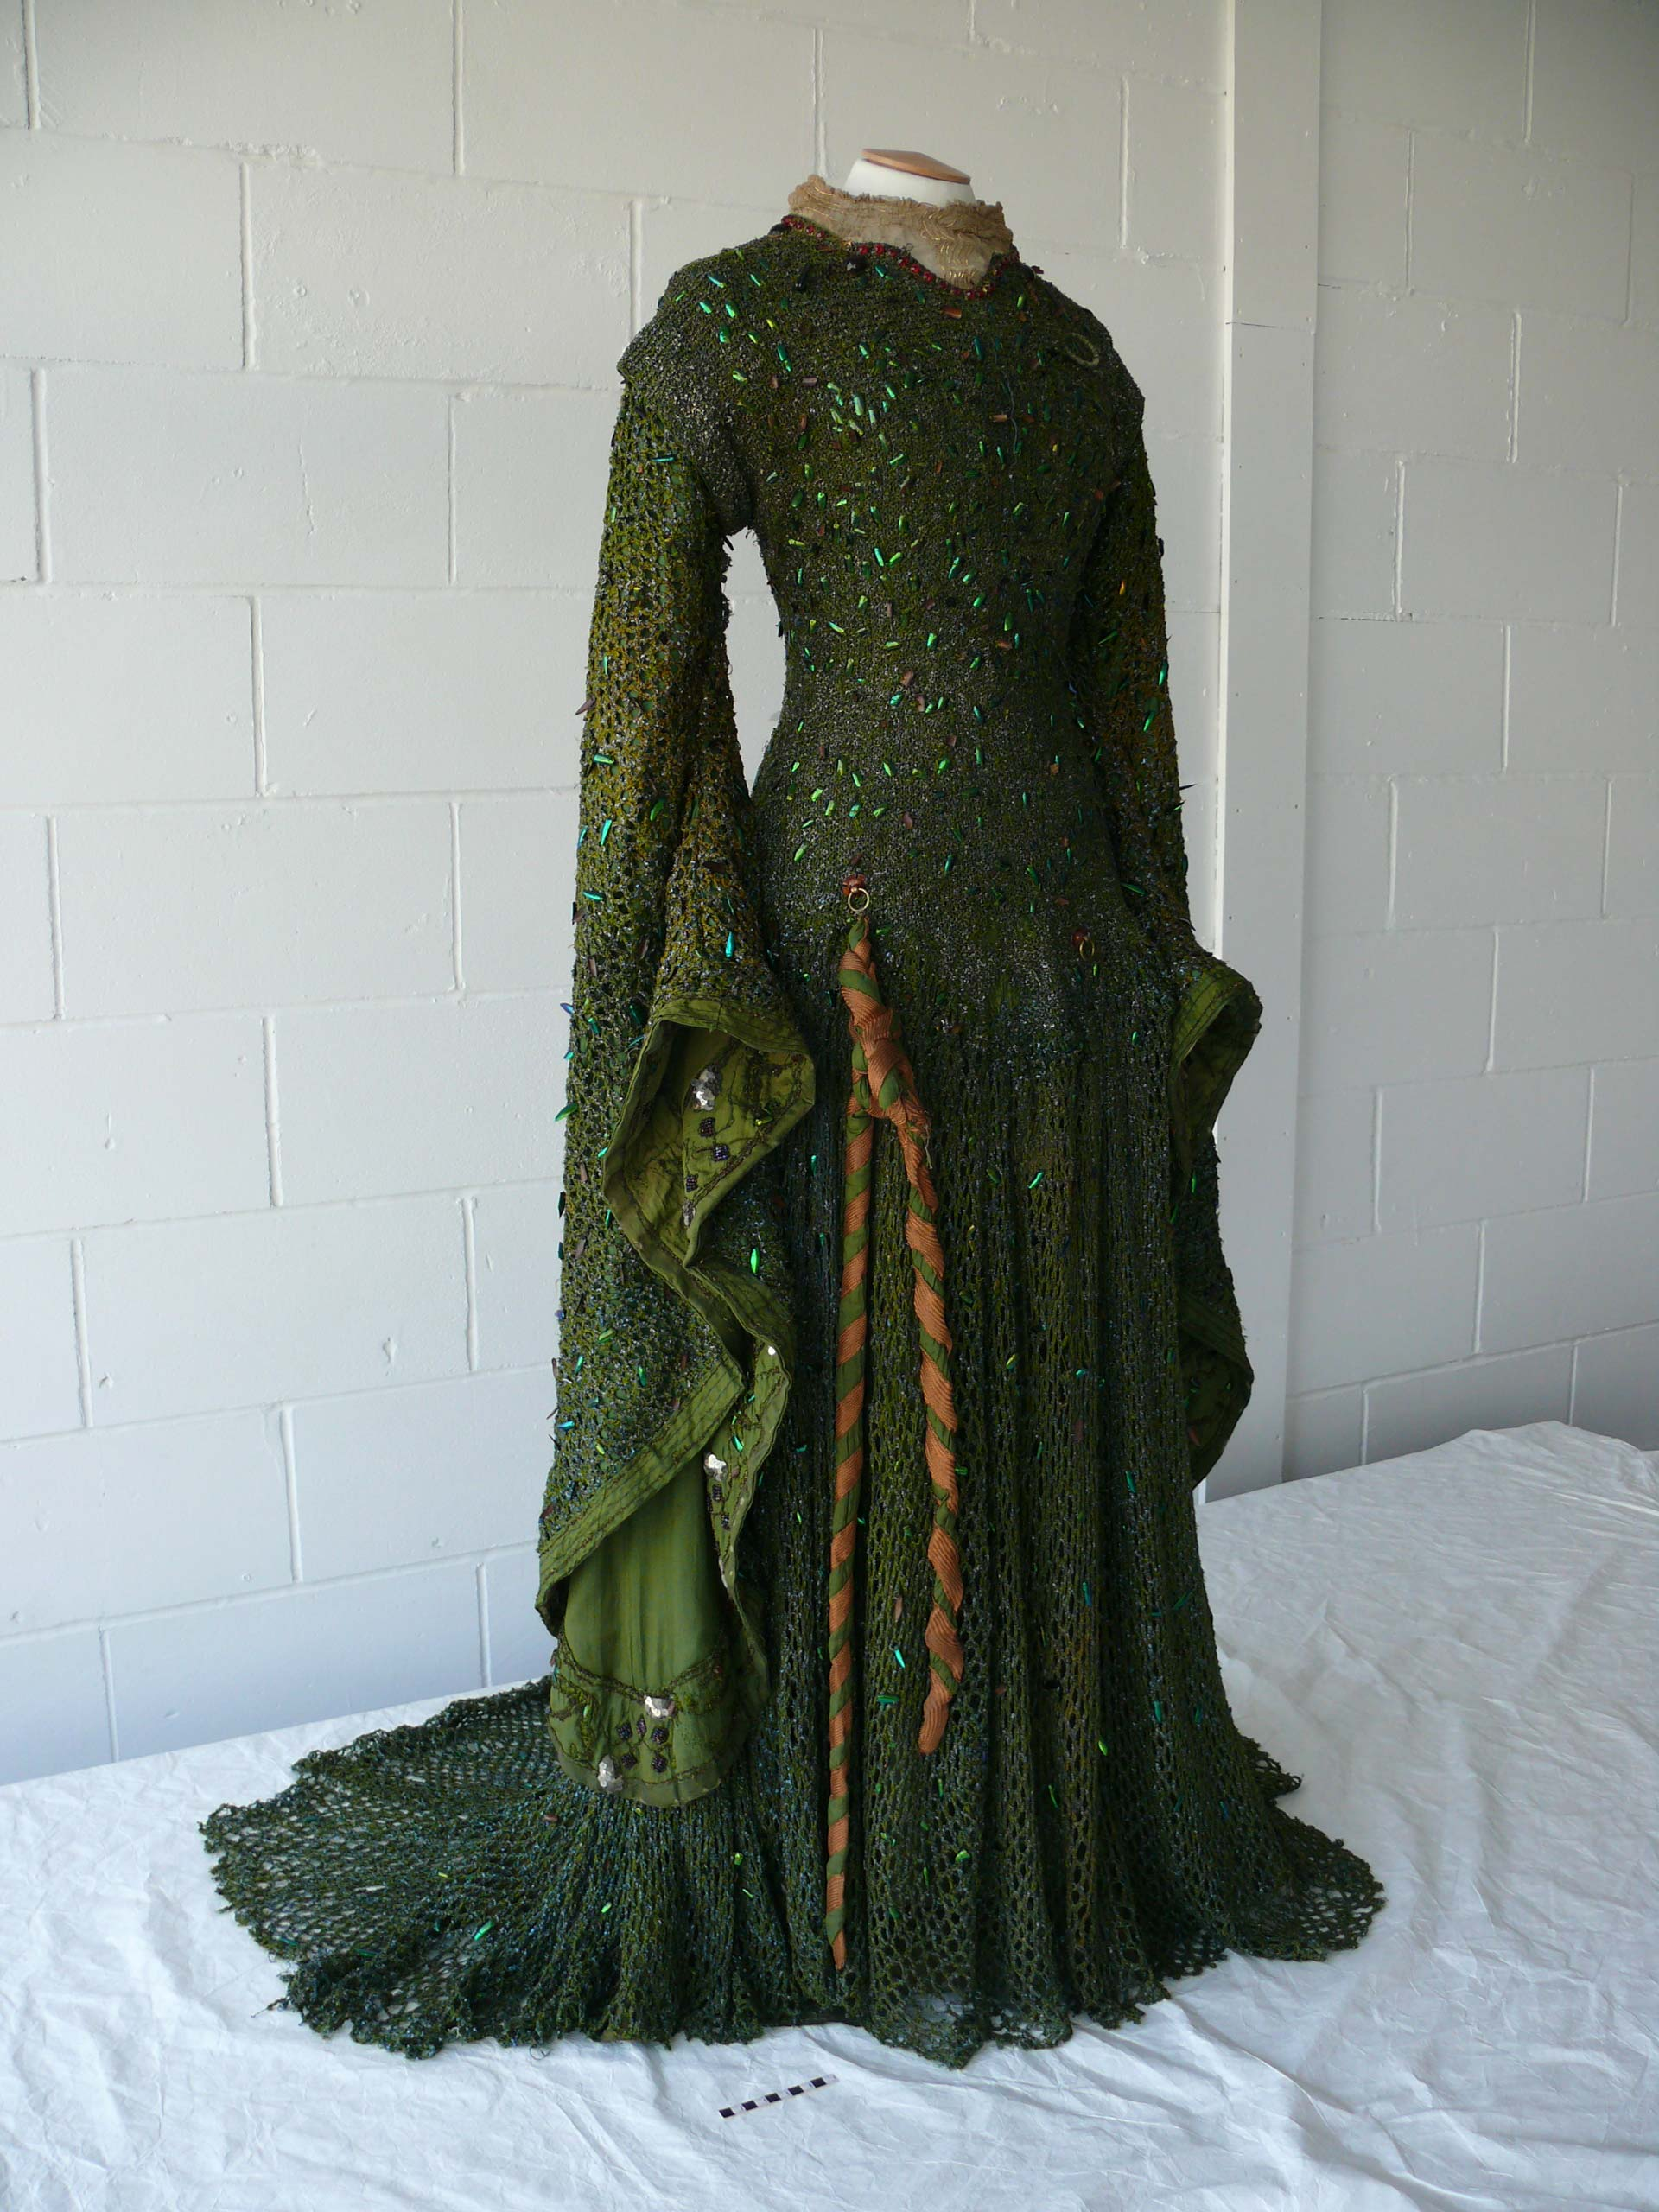 Ellen Terry's 'Lady Macbeth' dress prior to restoration.